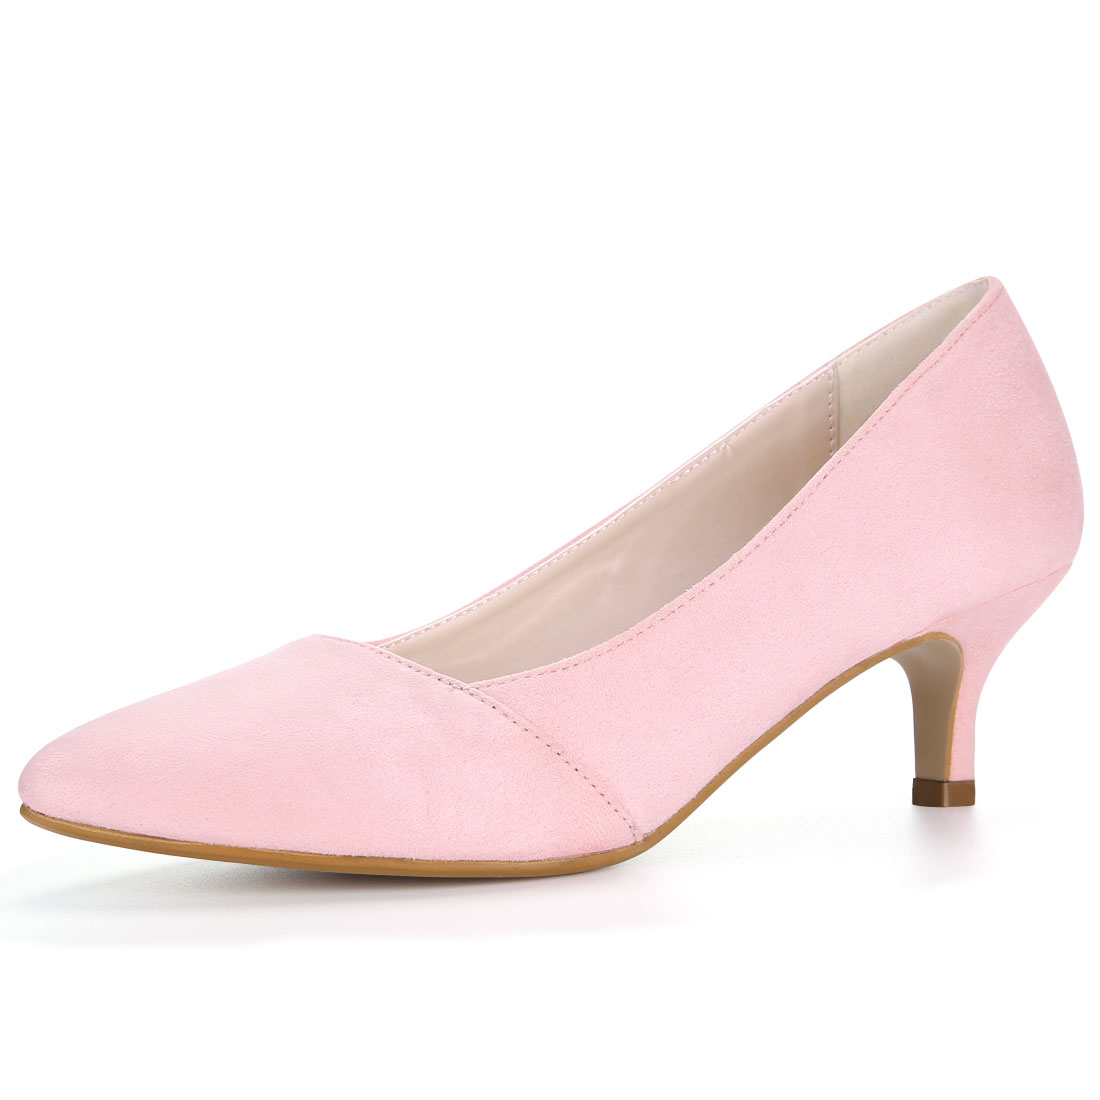 HF-27 Women Pointed Toe Mid Stiletto Heel Pumps Pink/US 9.5 - image 7 of 7